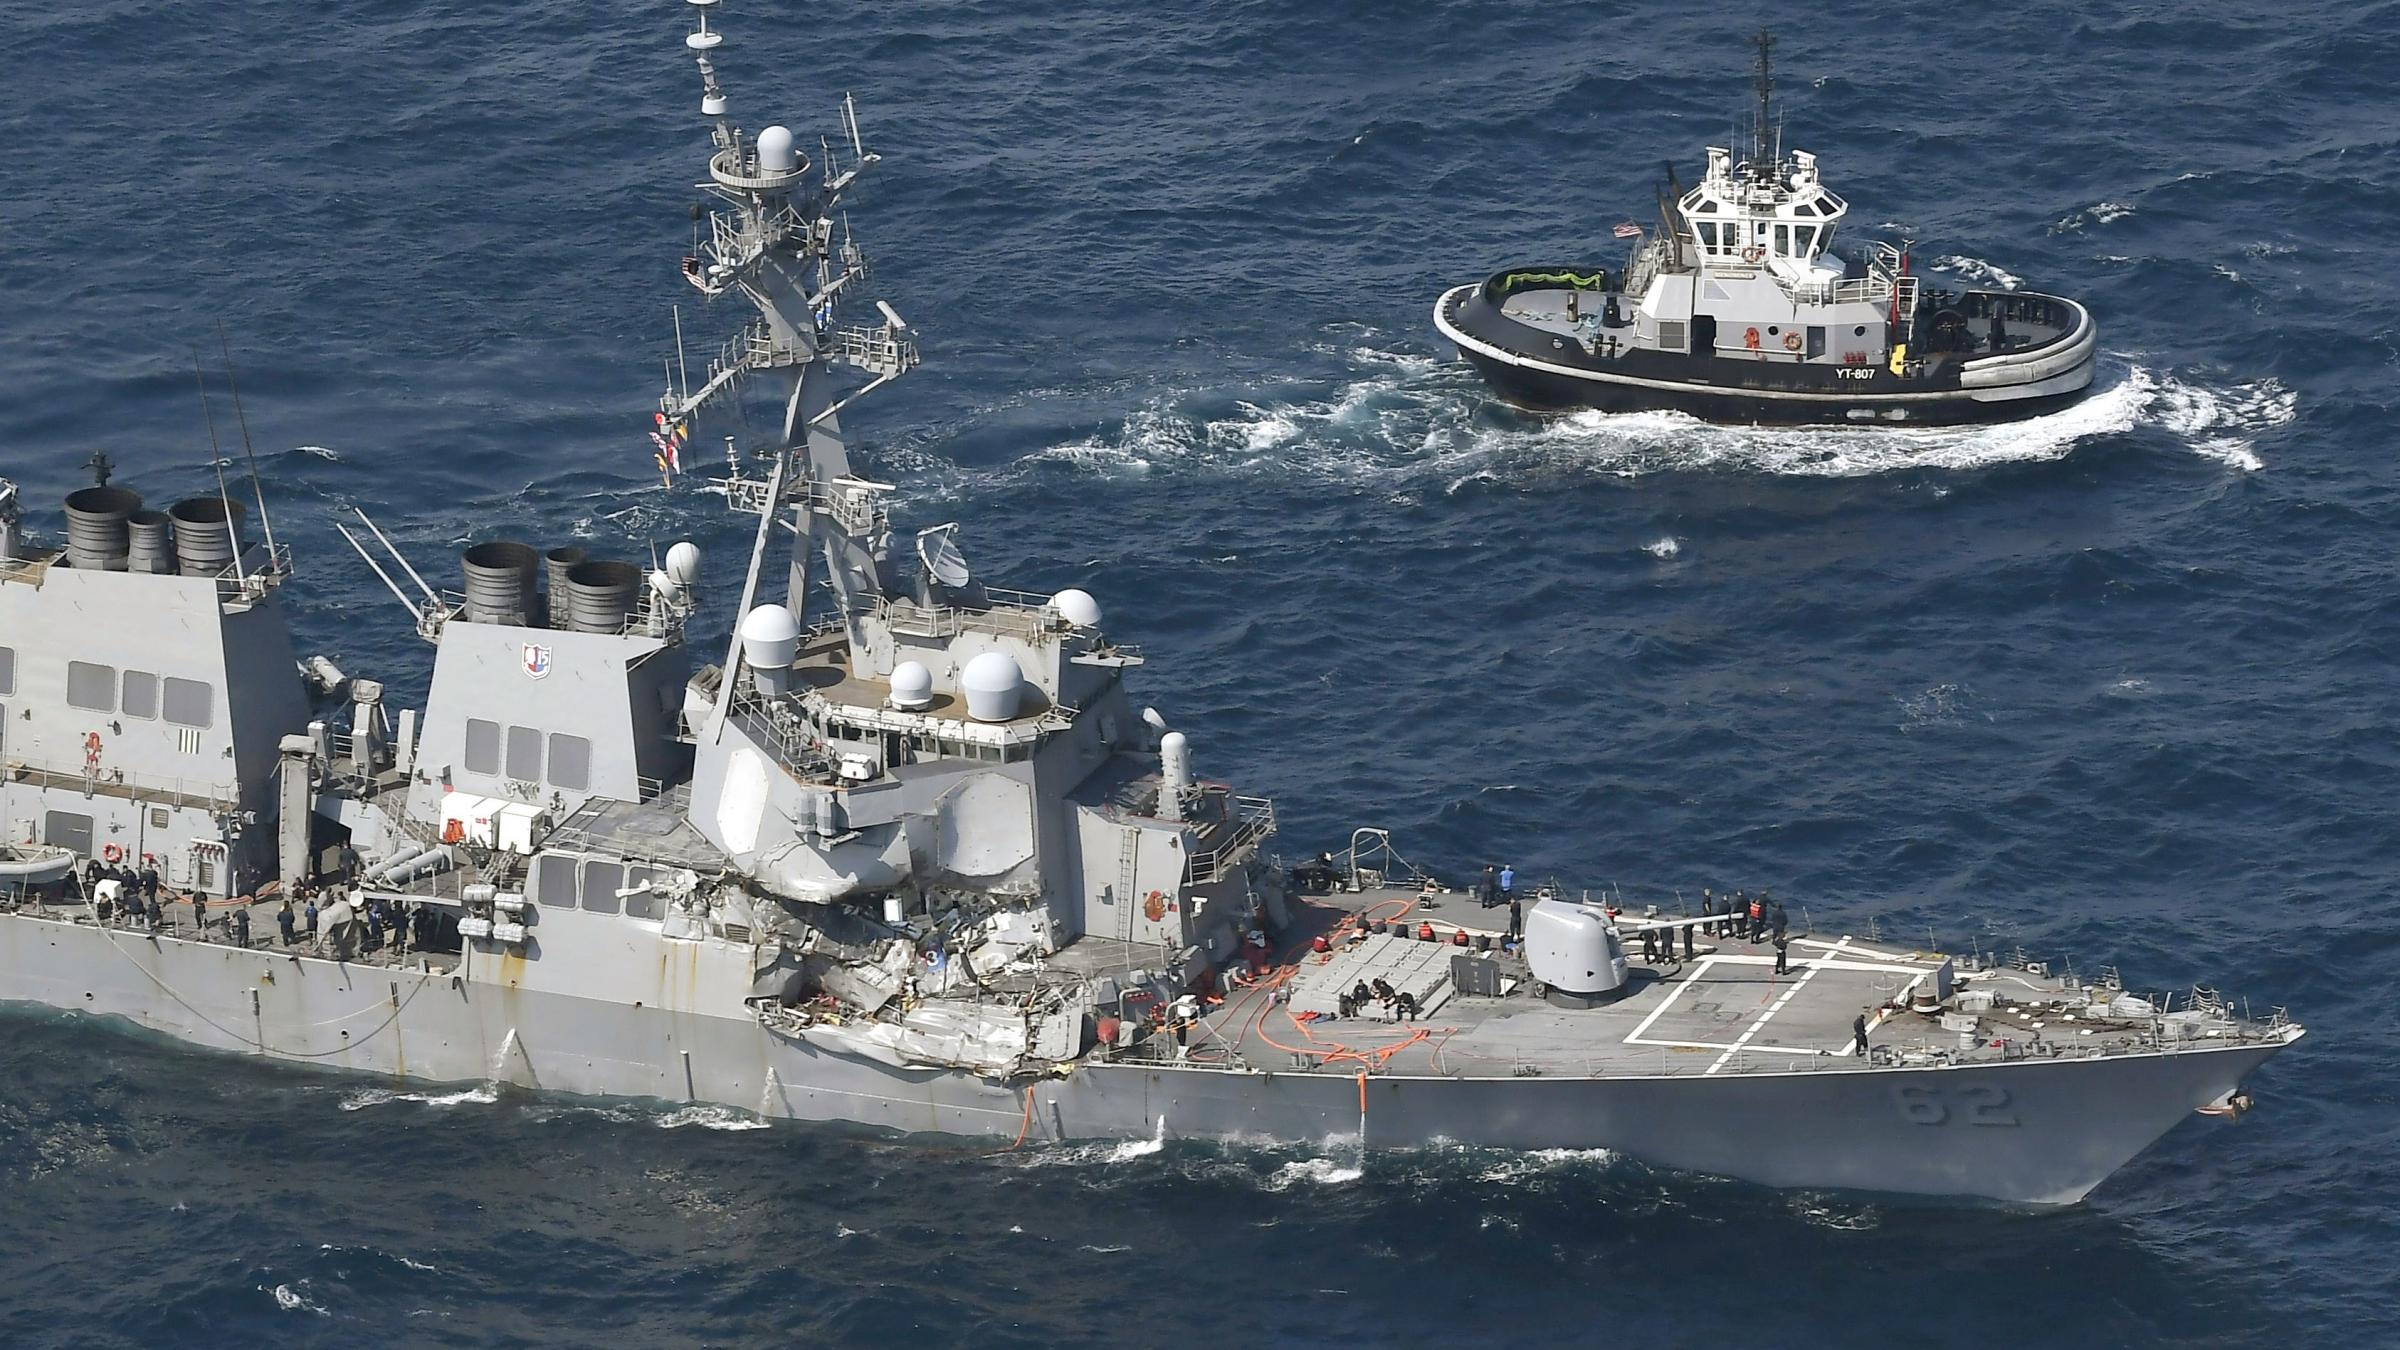 Sailors Missing After US Destroyer Collides with Merchant Ship in Pacific